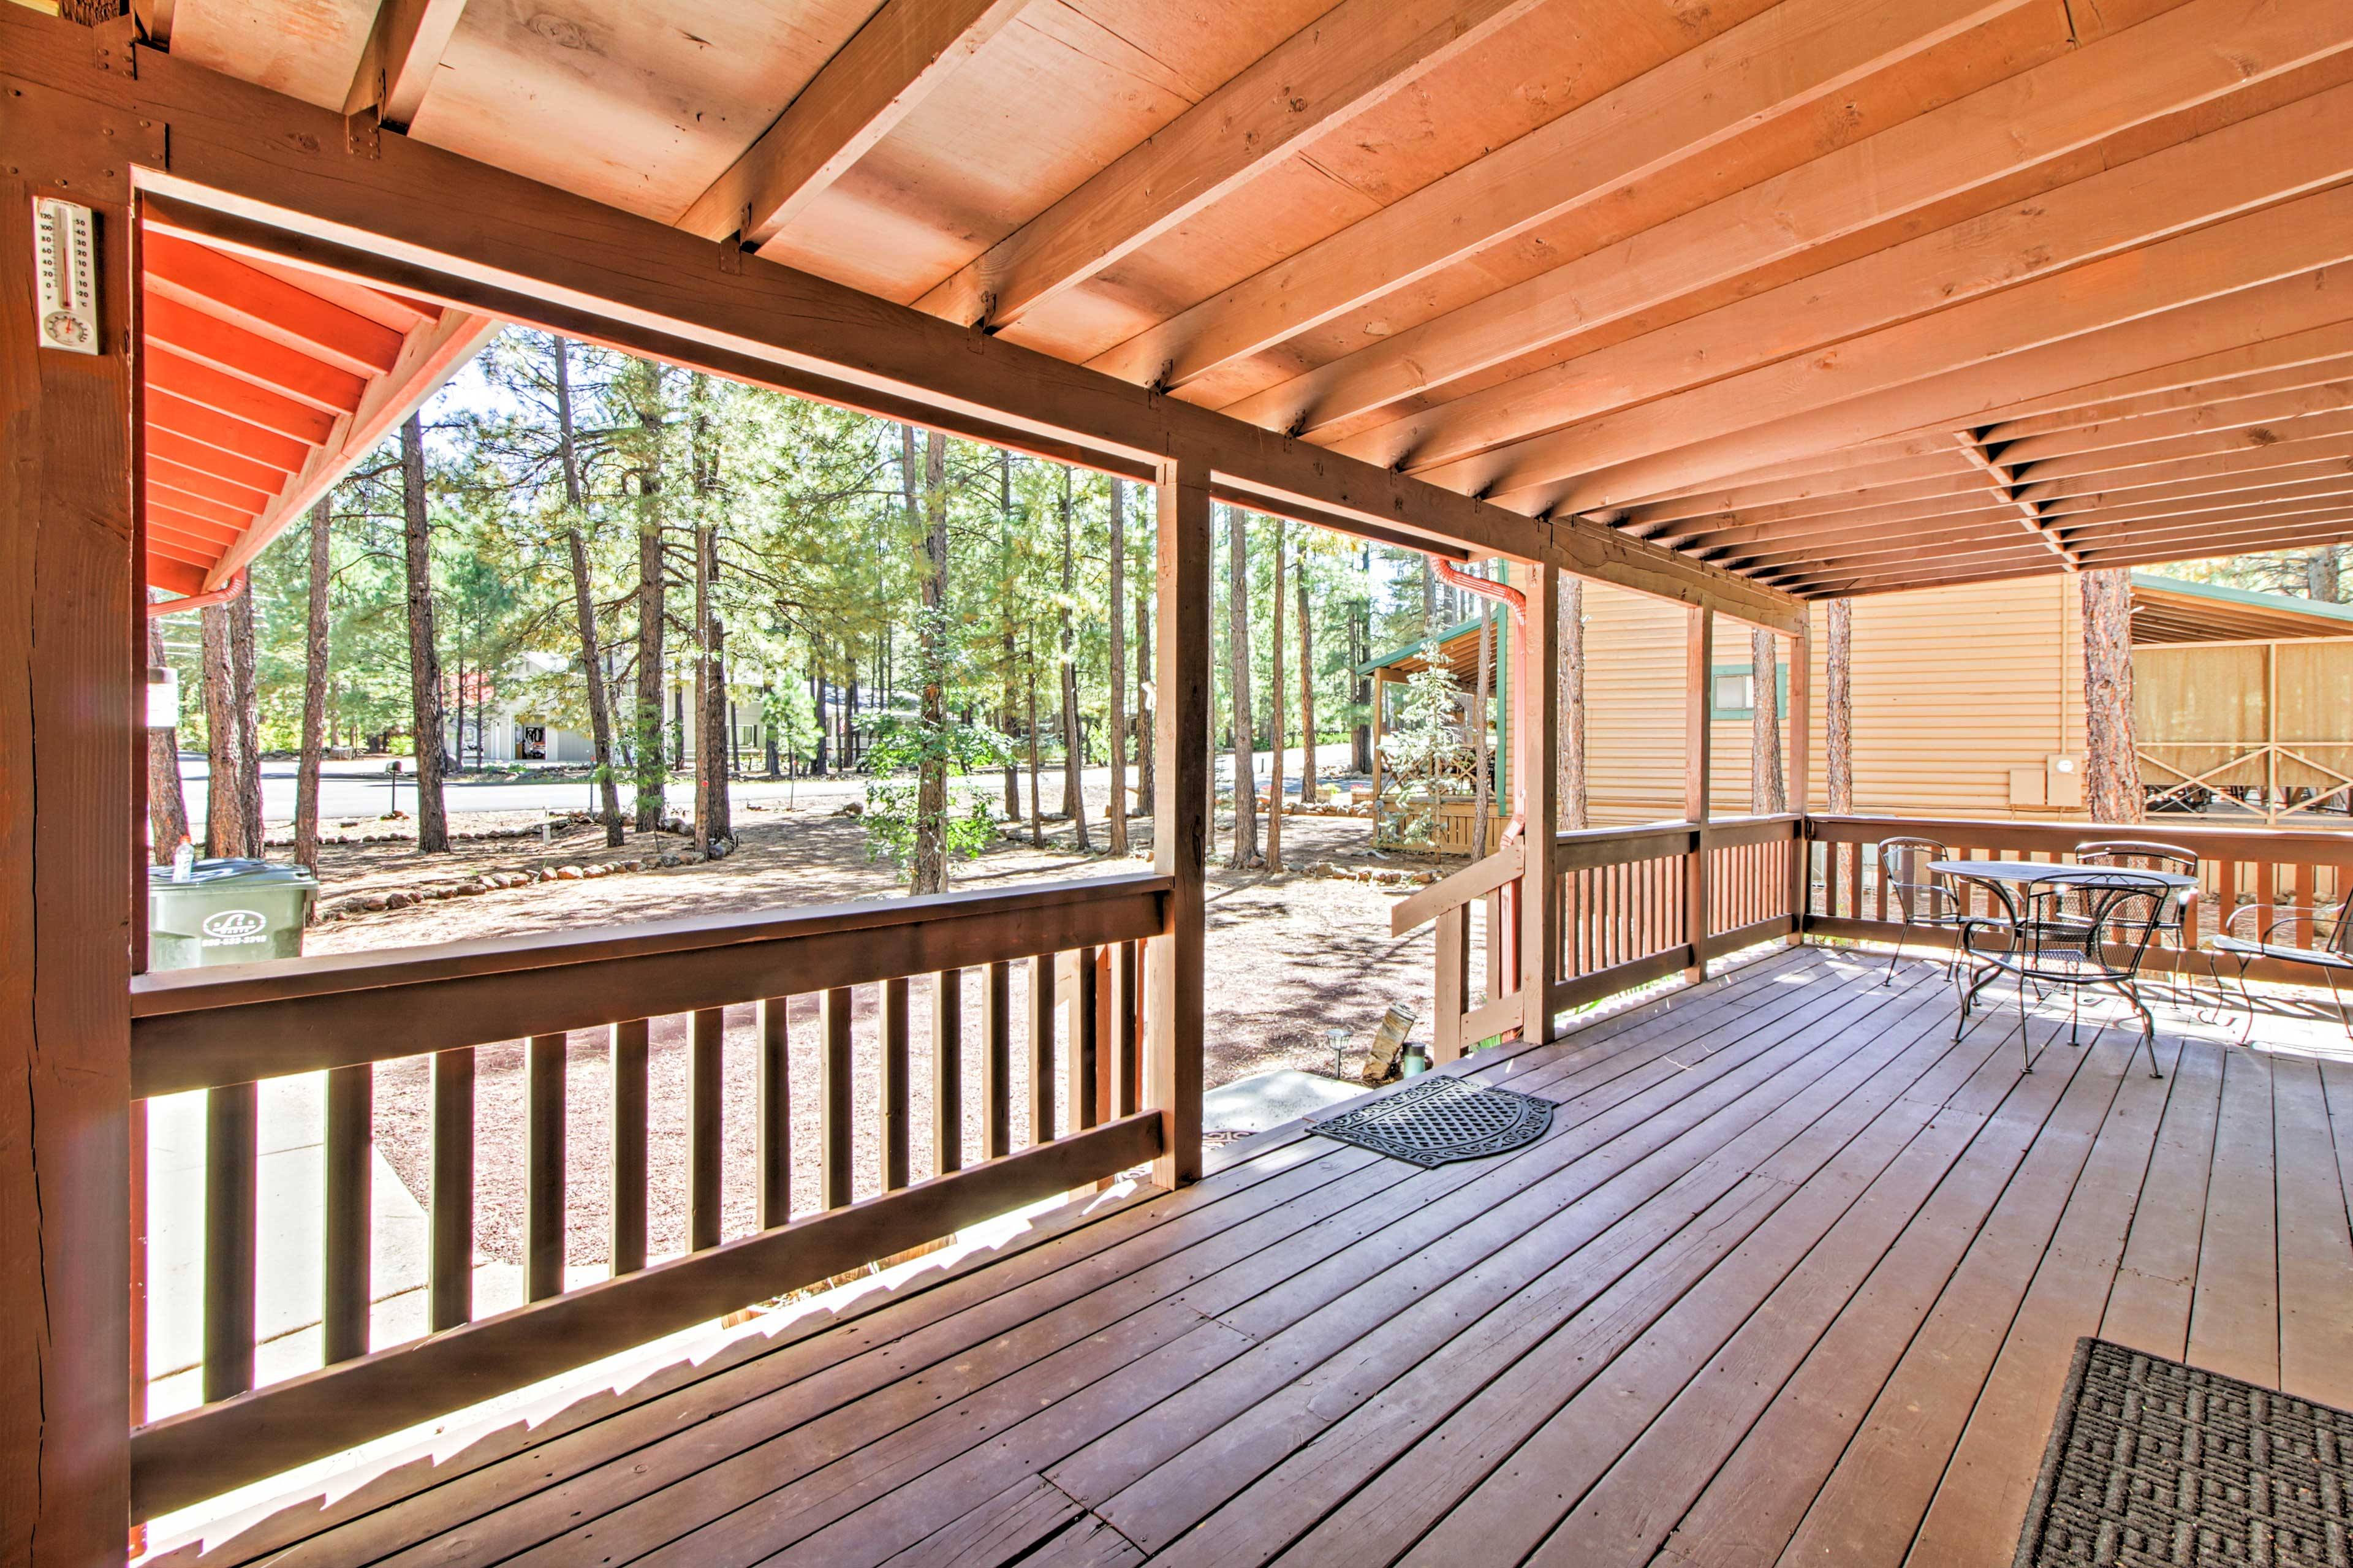 The home boasts a covered deck with a 4-person table.